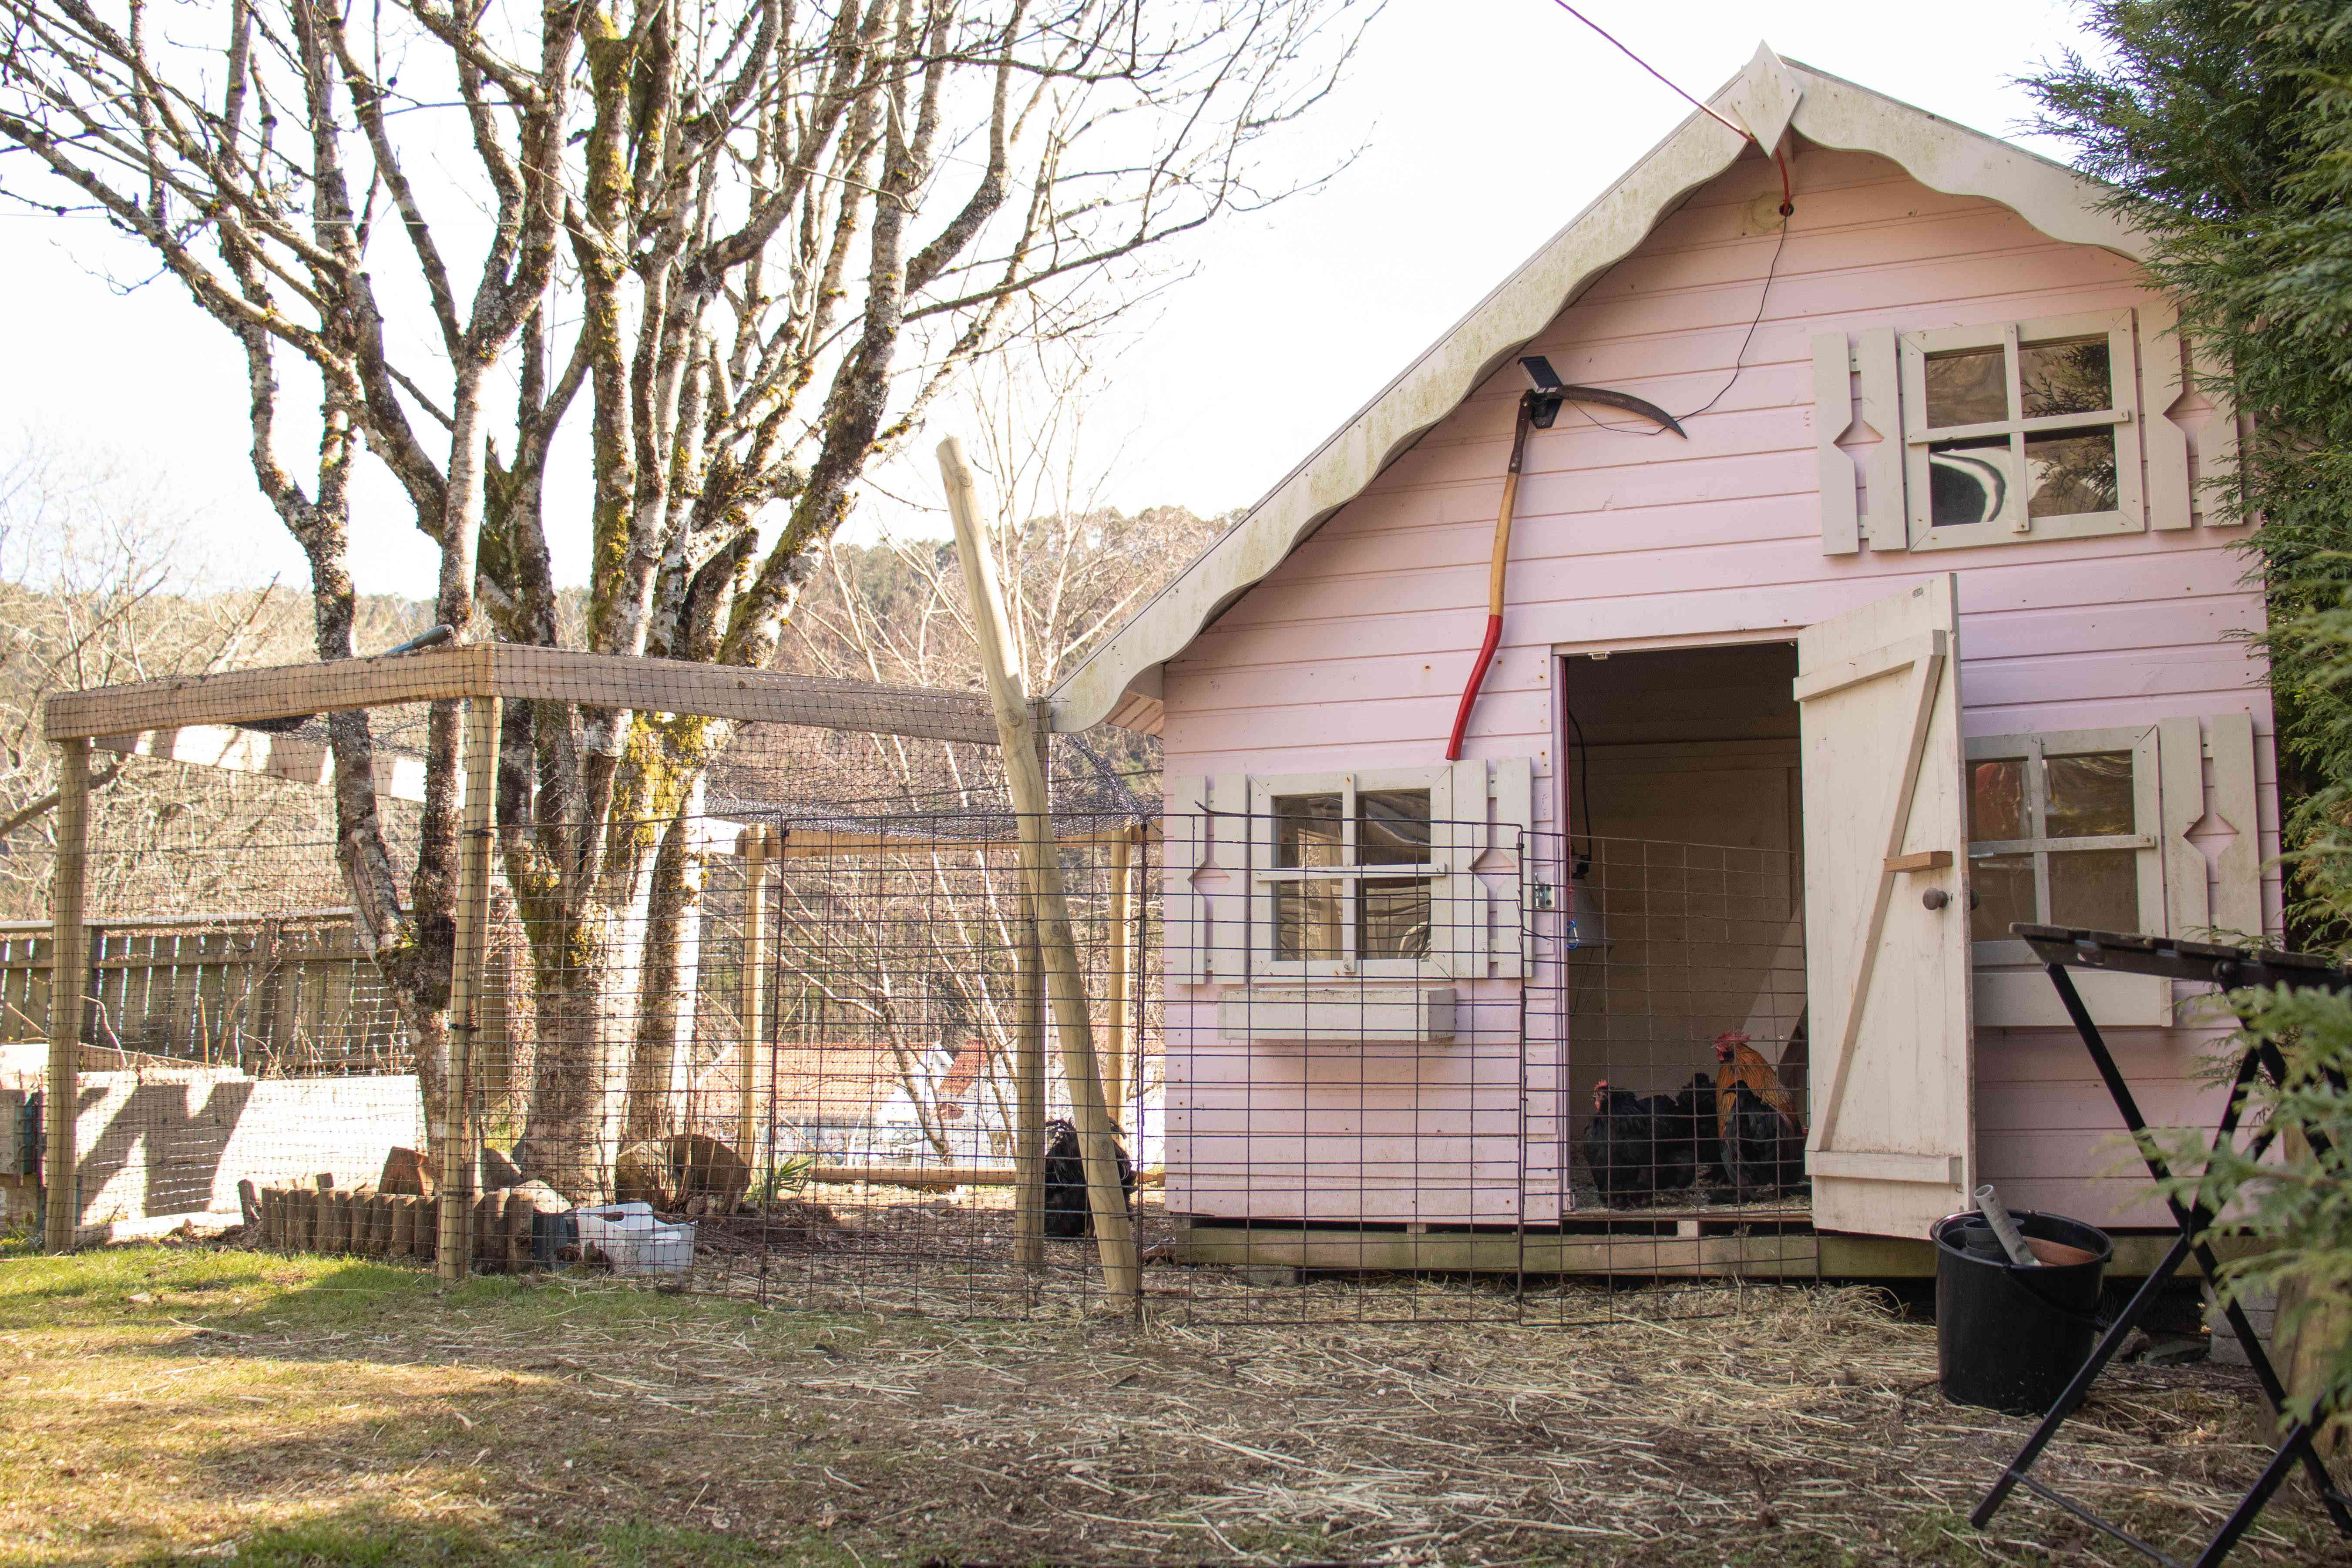 Chicken wire surrounding pink chicken coop for pet chicken protection